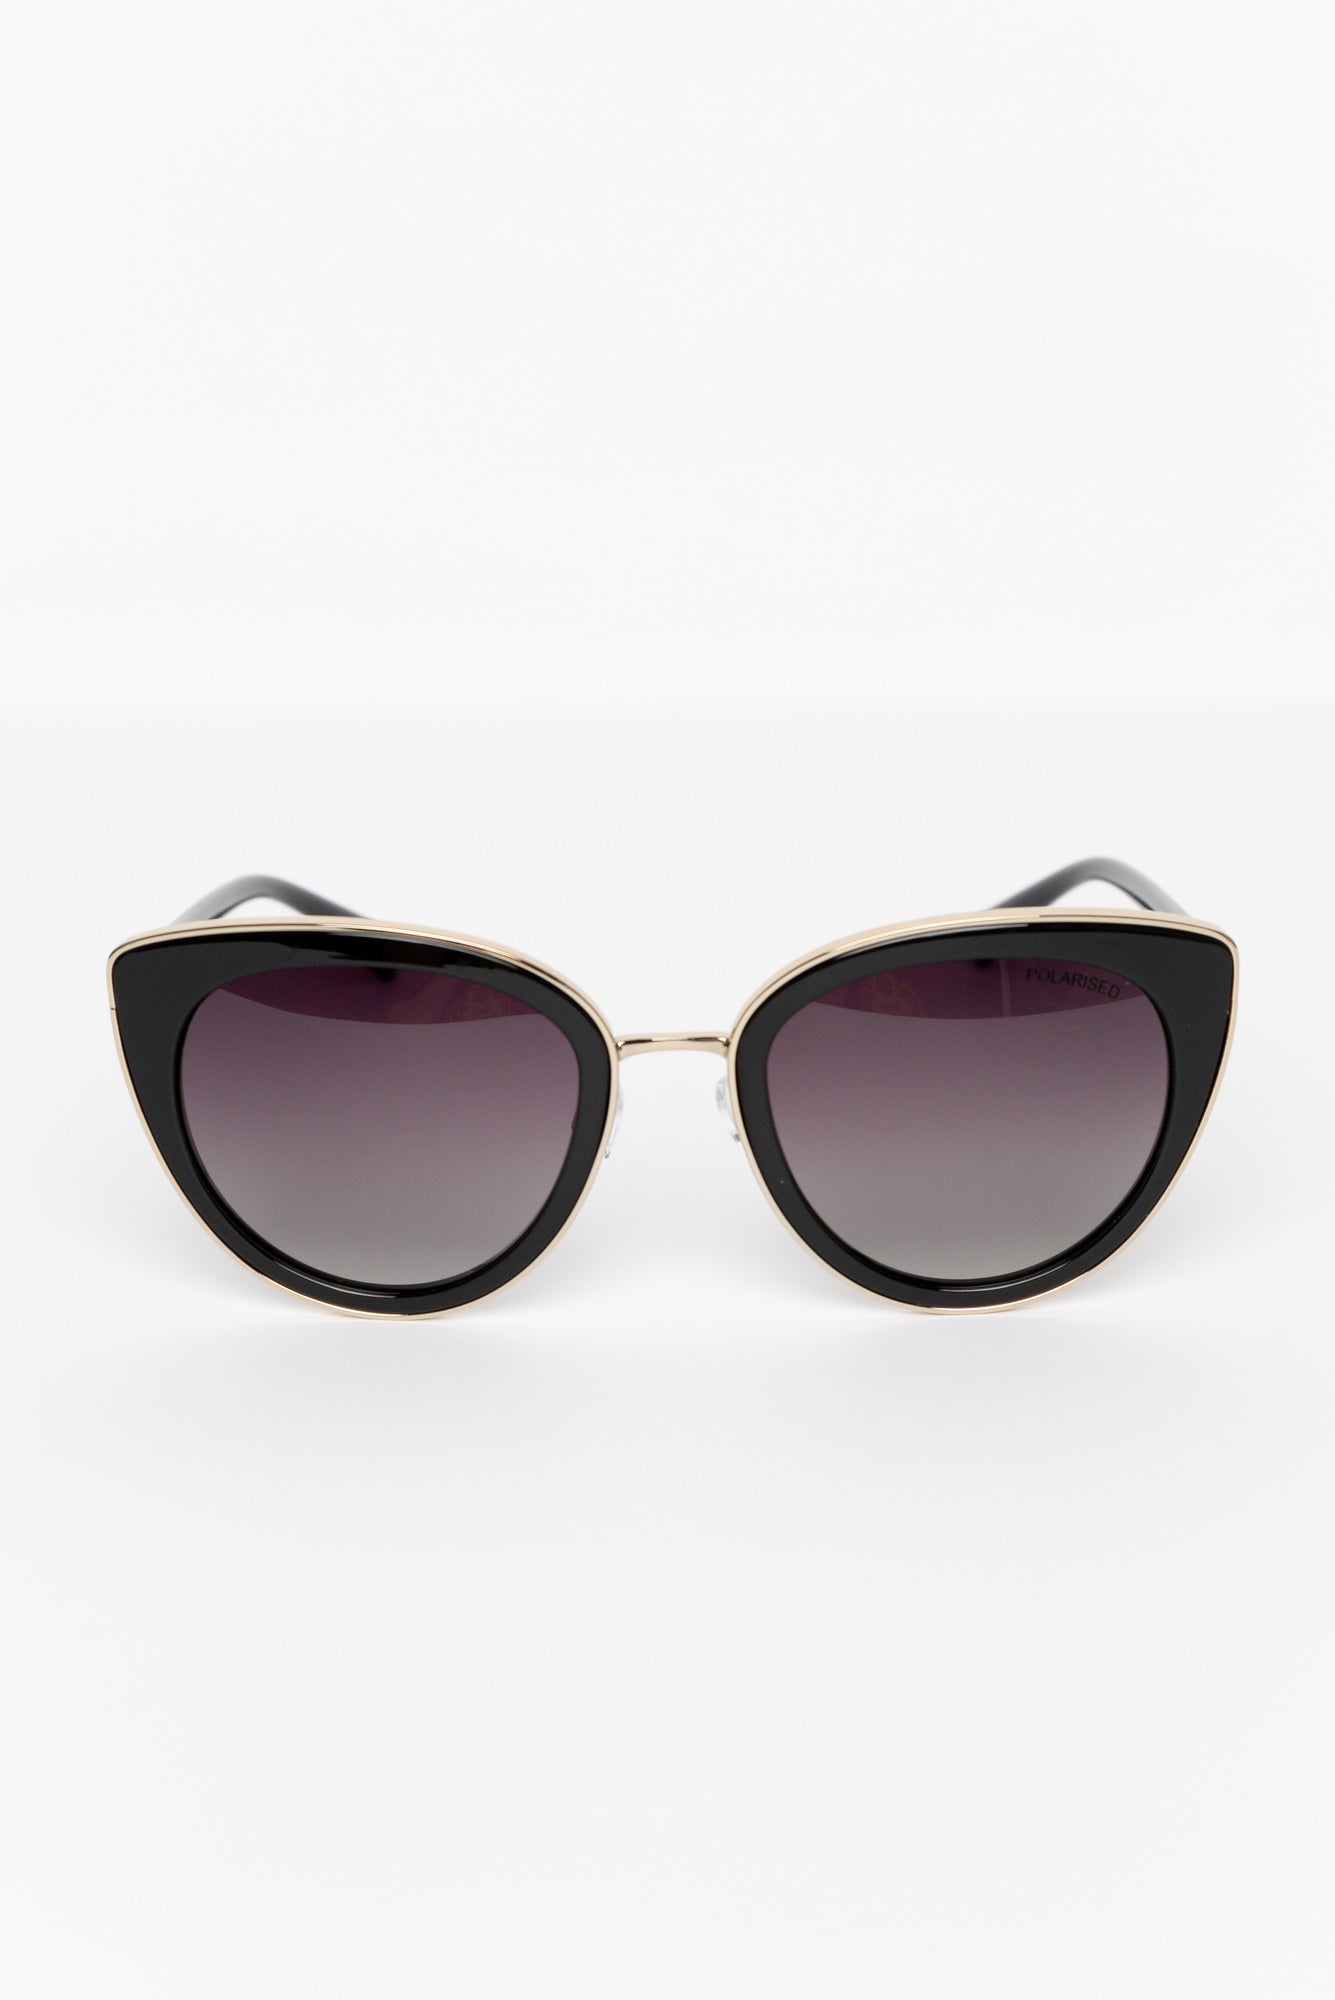 Chloe Black Sunglasses